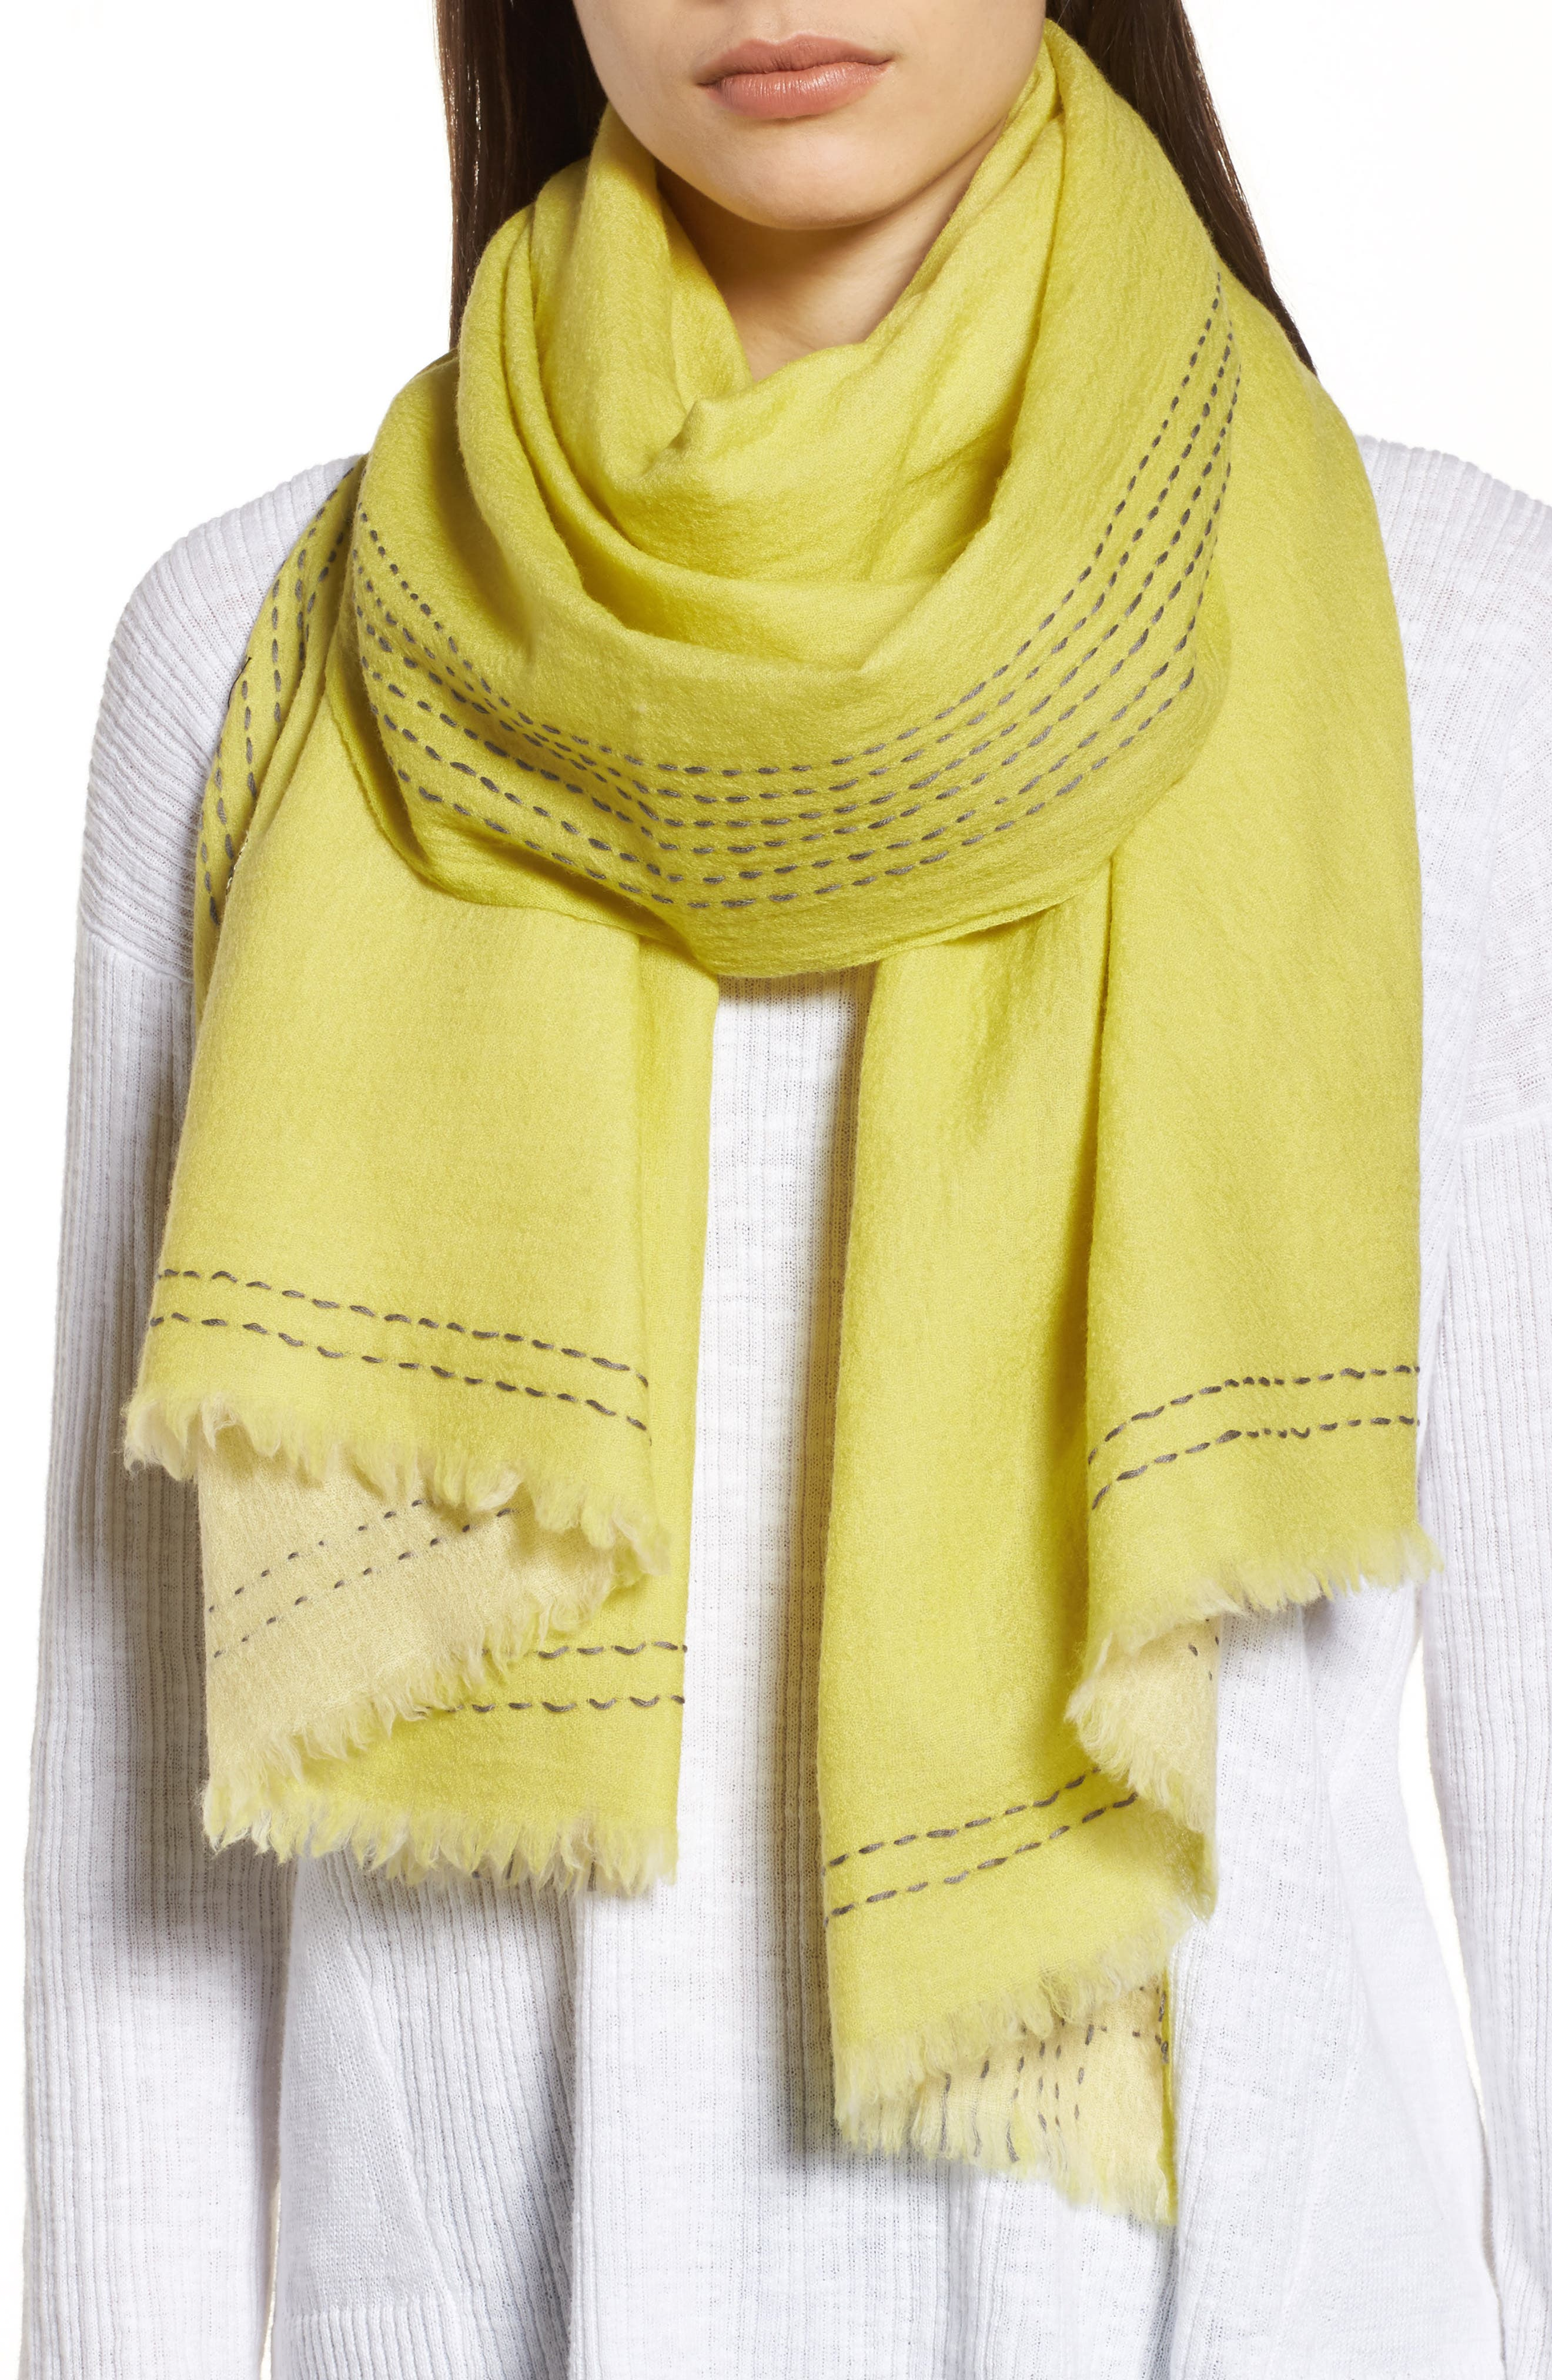 Embroidered Wool Scarf,                             Main thumbnail 1, color,                             361